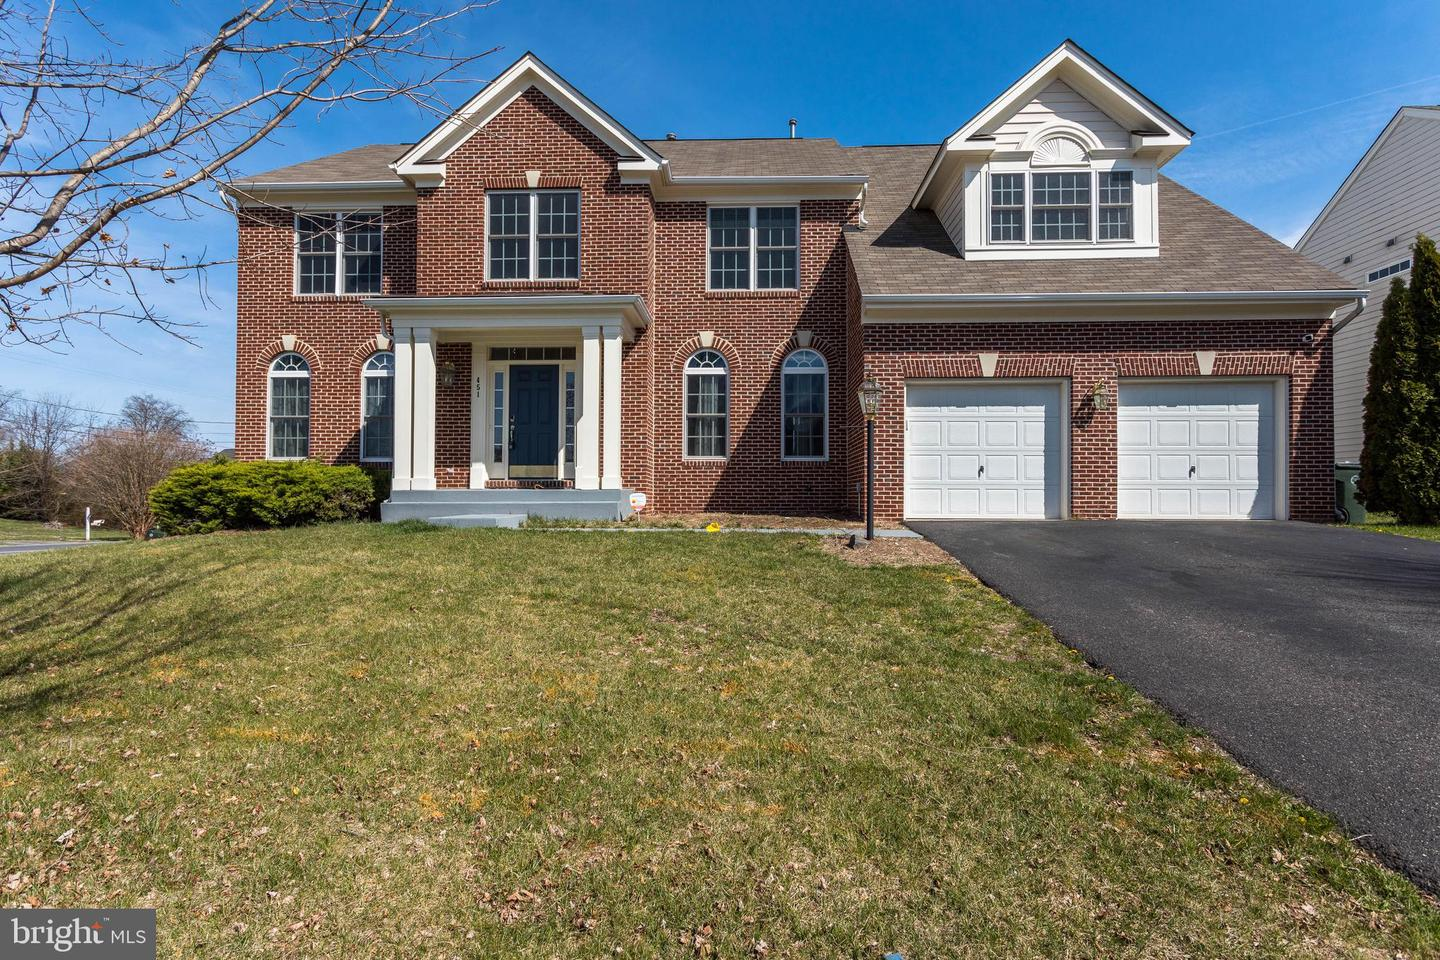 Single Family for Sale at 451 Blossom Tree Rd Culpeper, Virginia 22701 United States